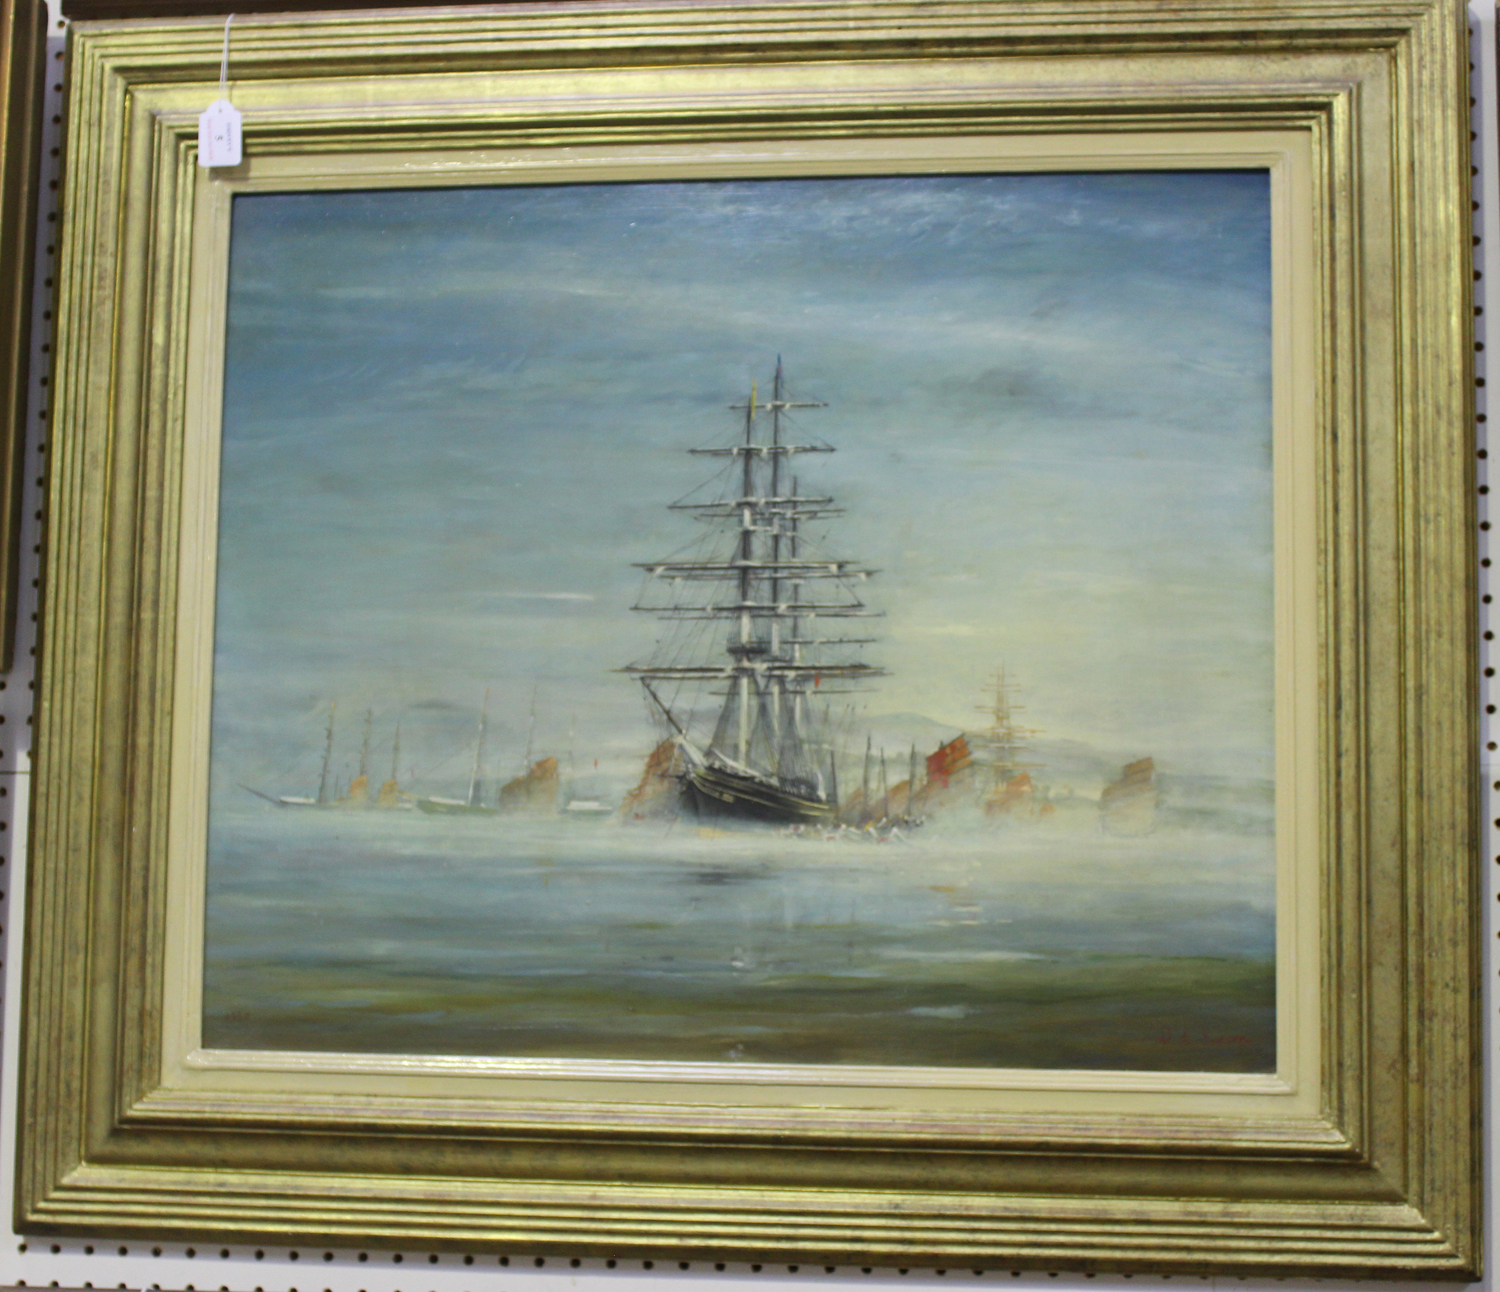 Donald Sinclair Swan - Tea Clipper with Chinese Junks in a